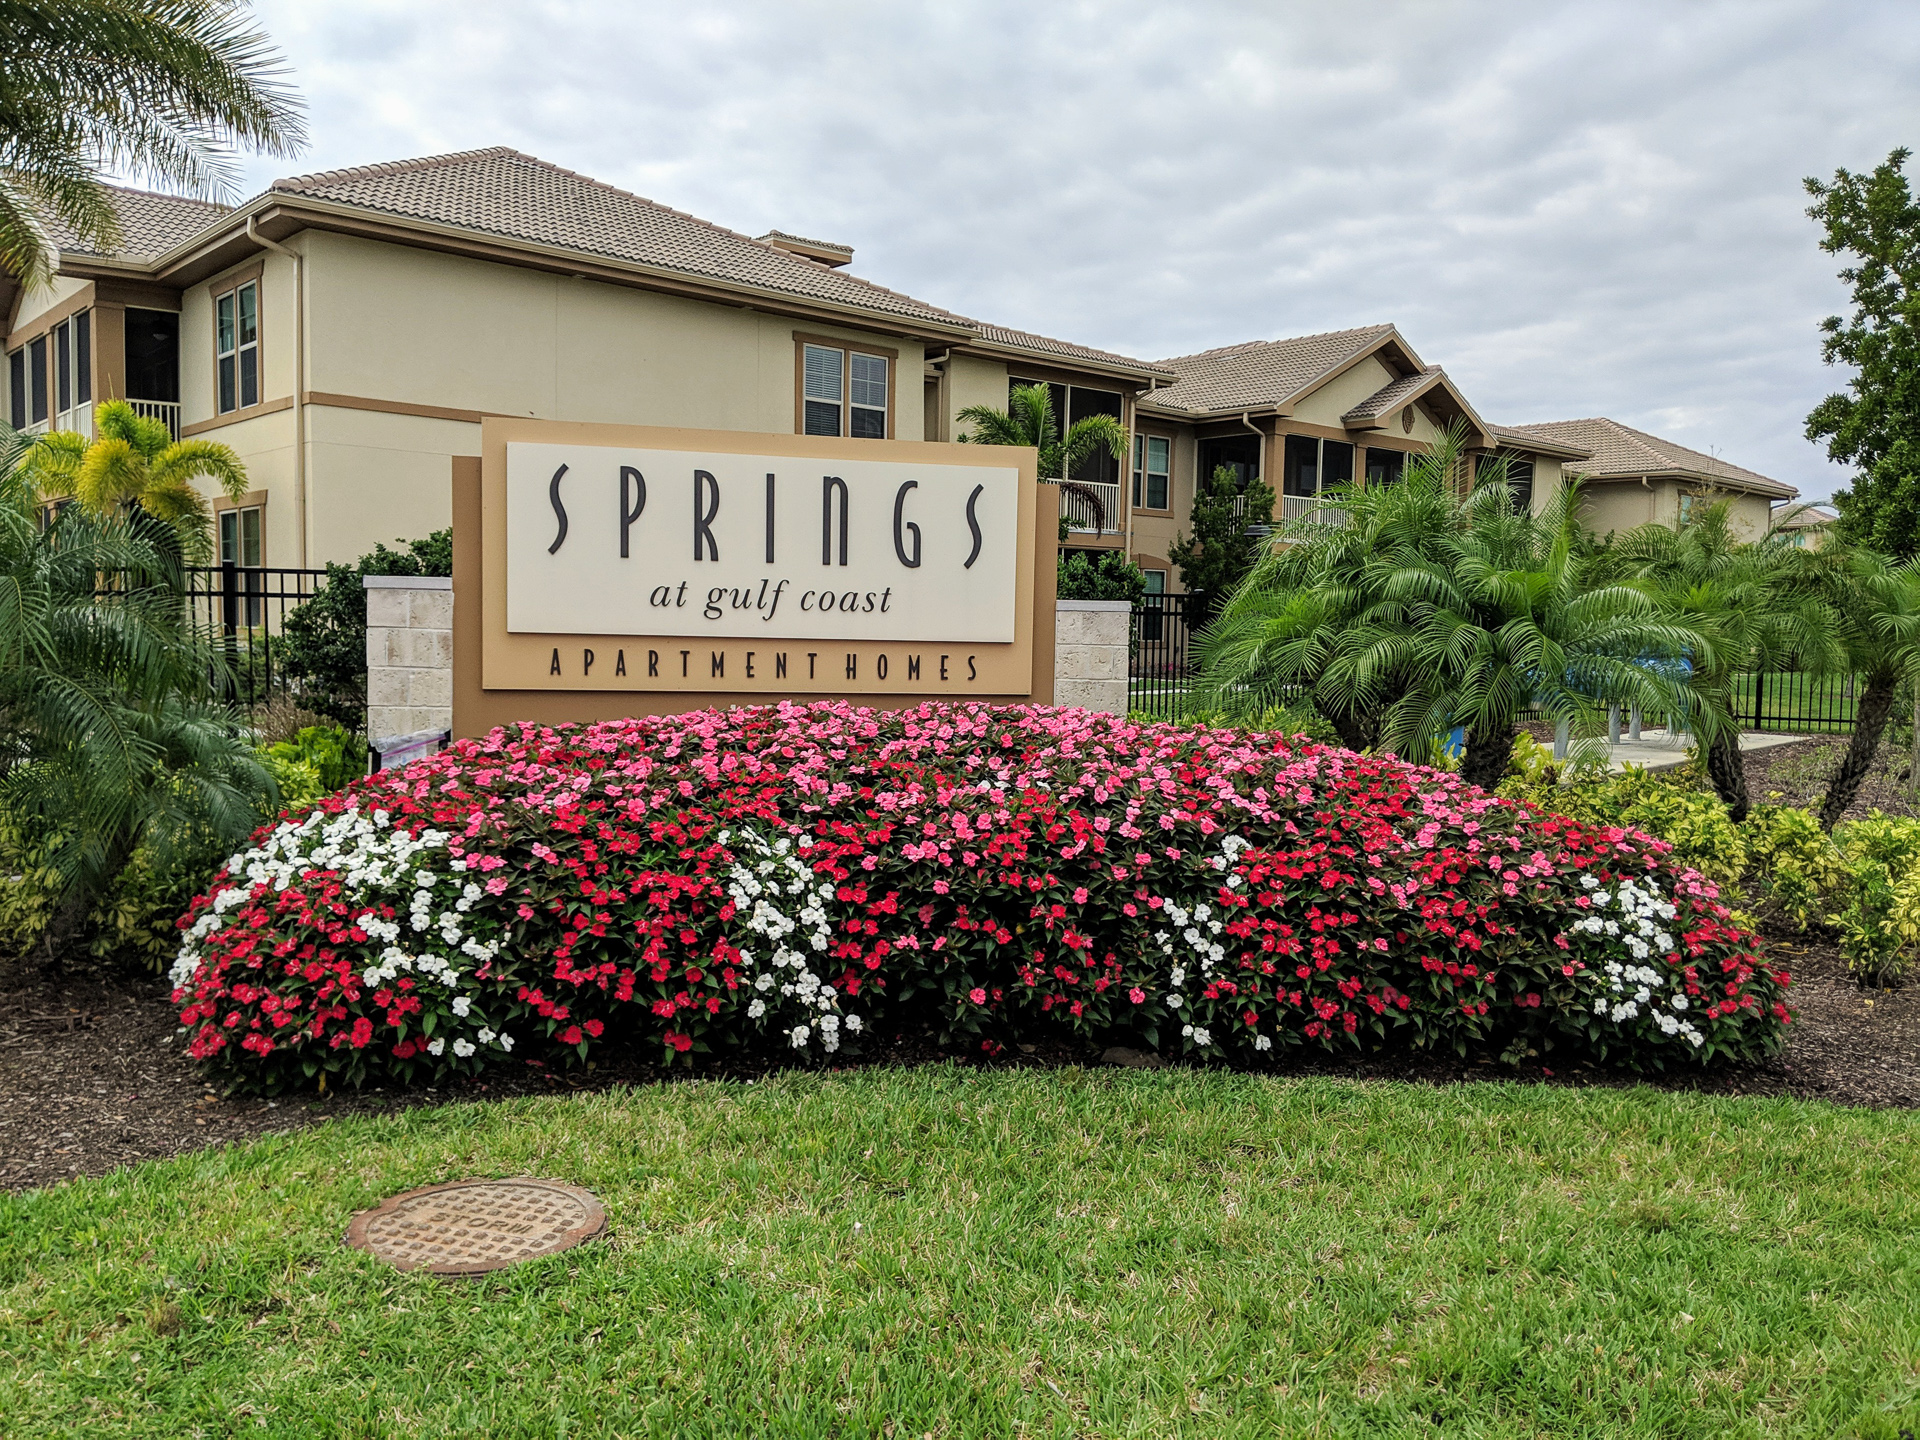 Springs at Gulf Coast sign and exterior